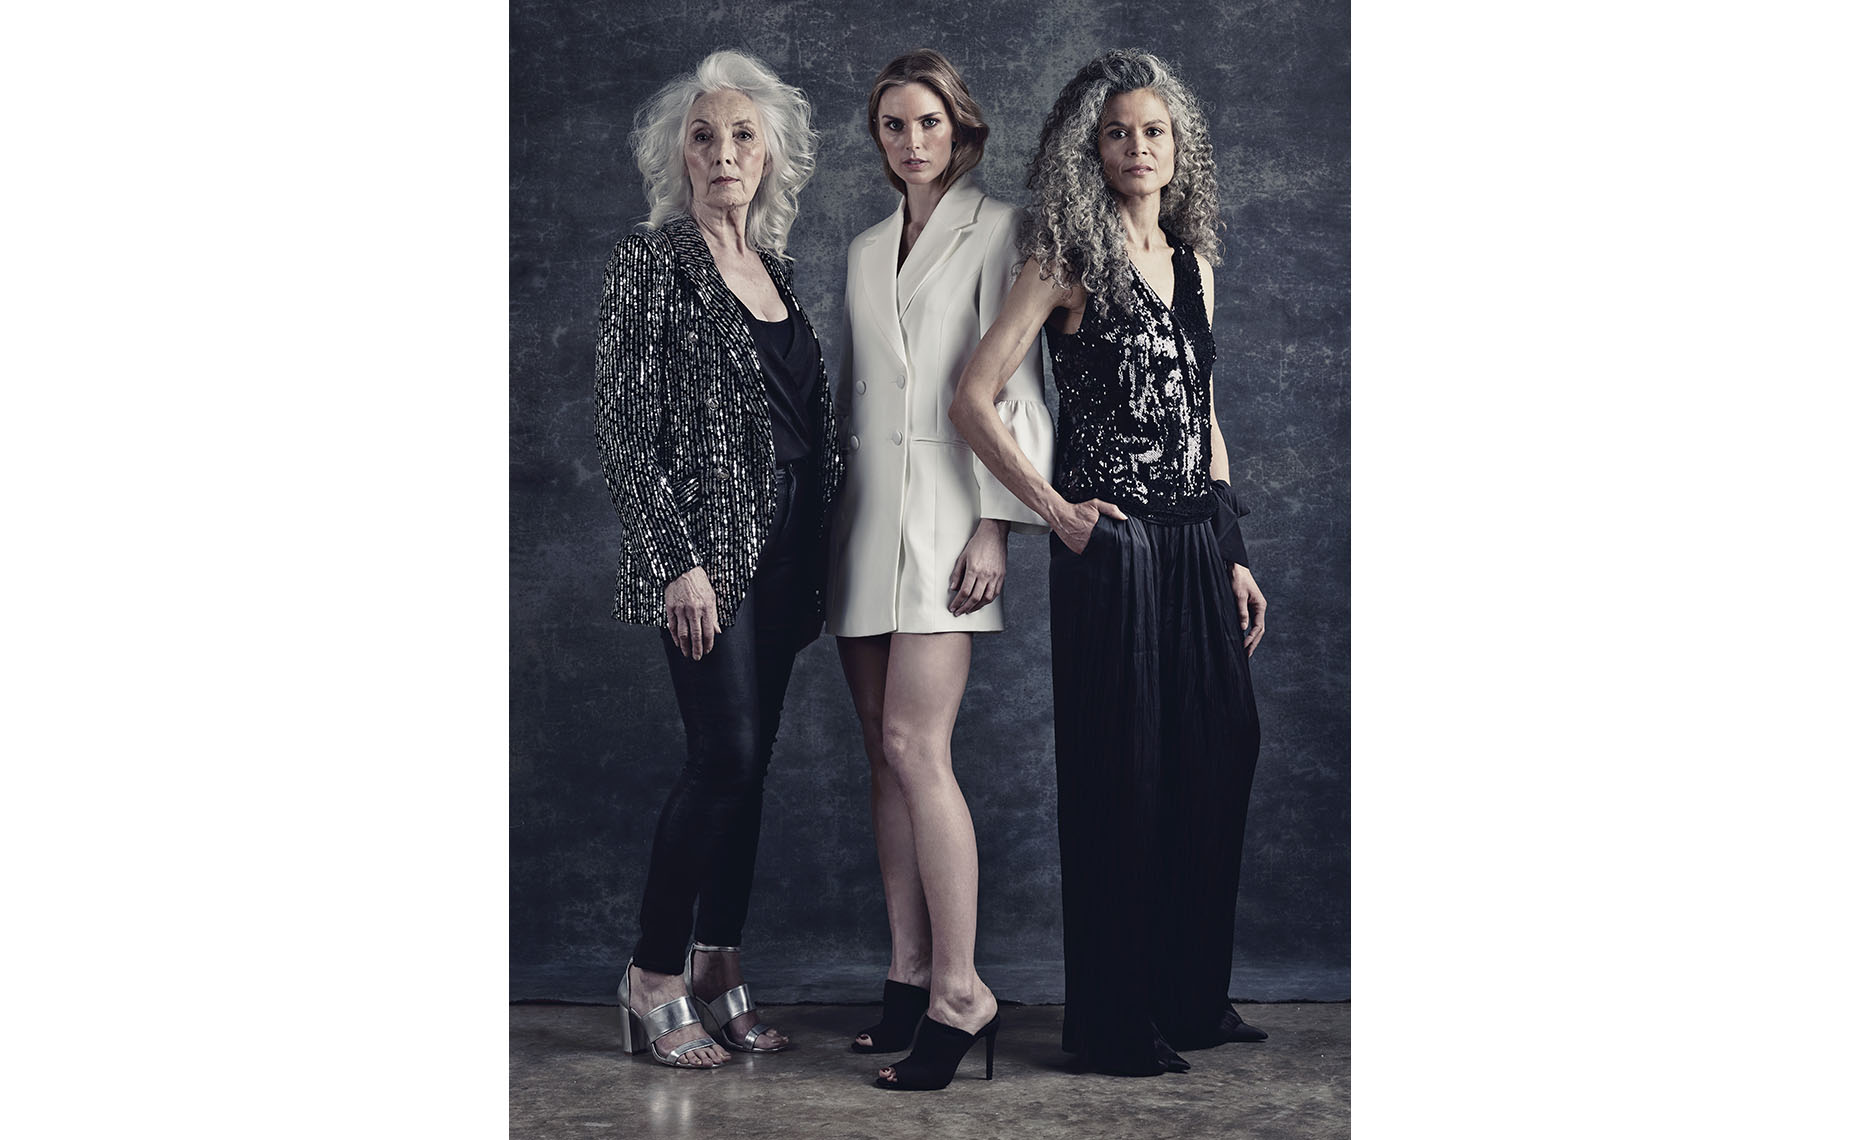 jameslightbown_london_fashion_advertising_photographer_generations_5